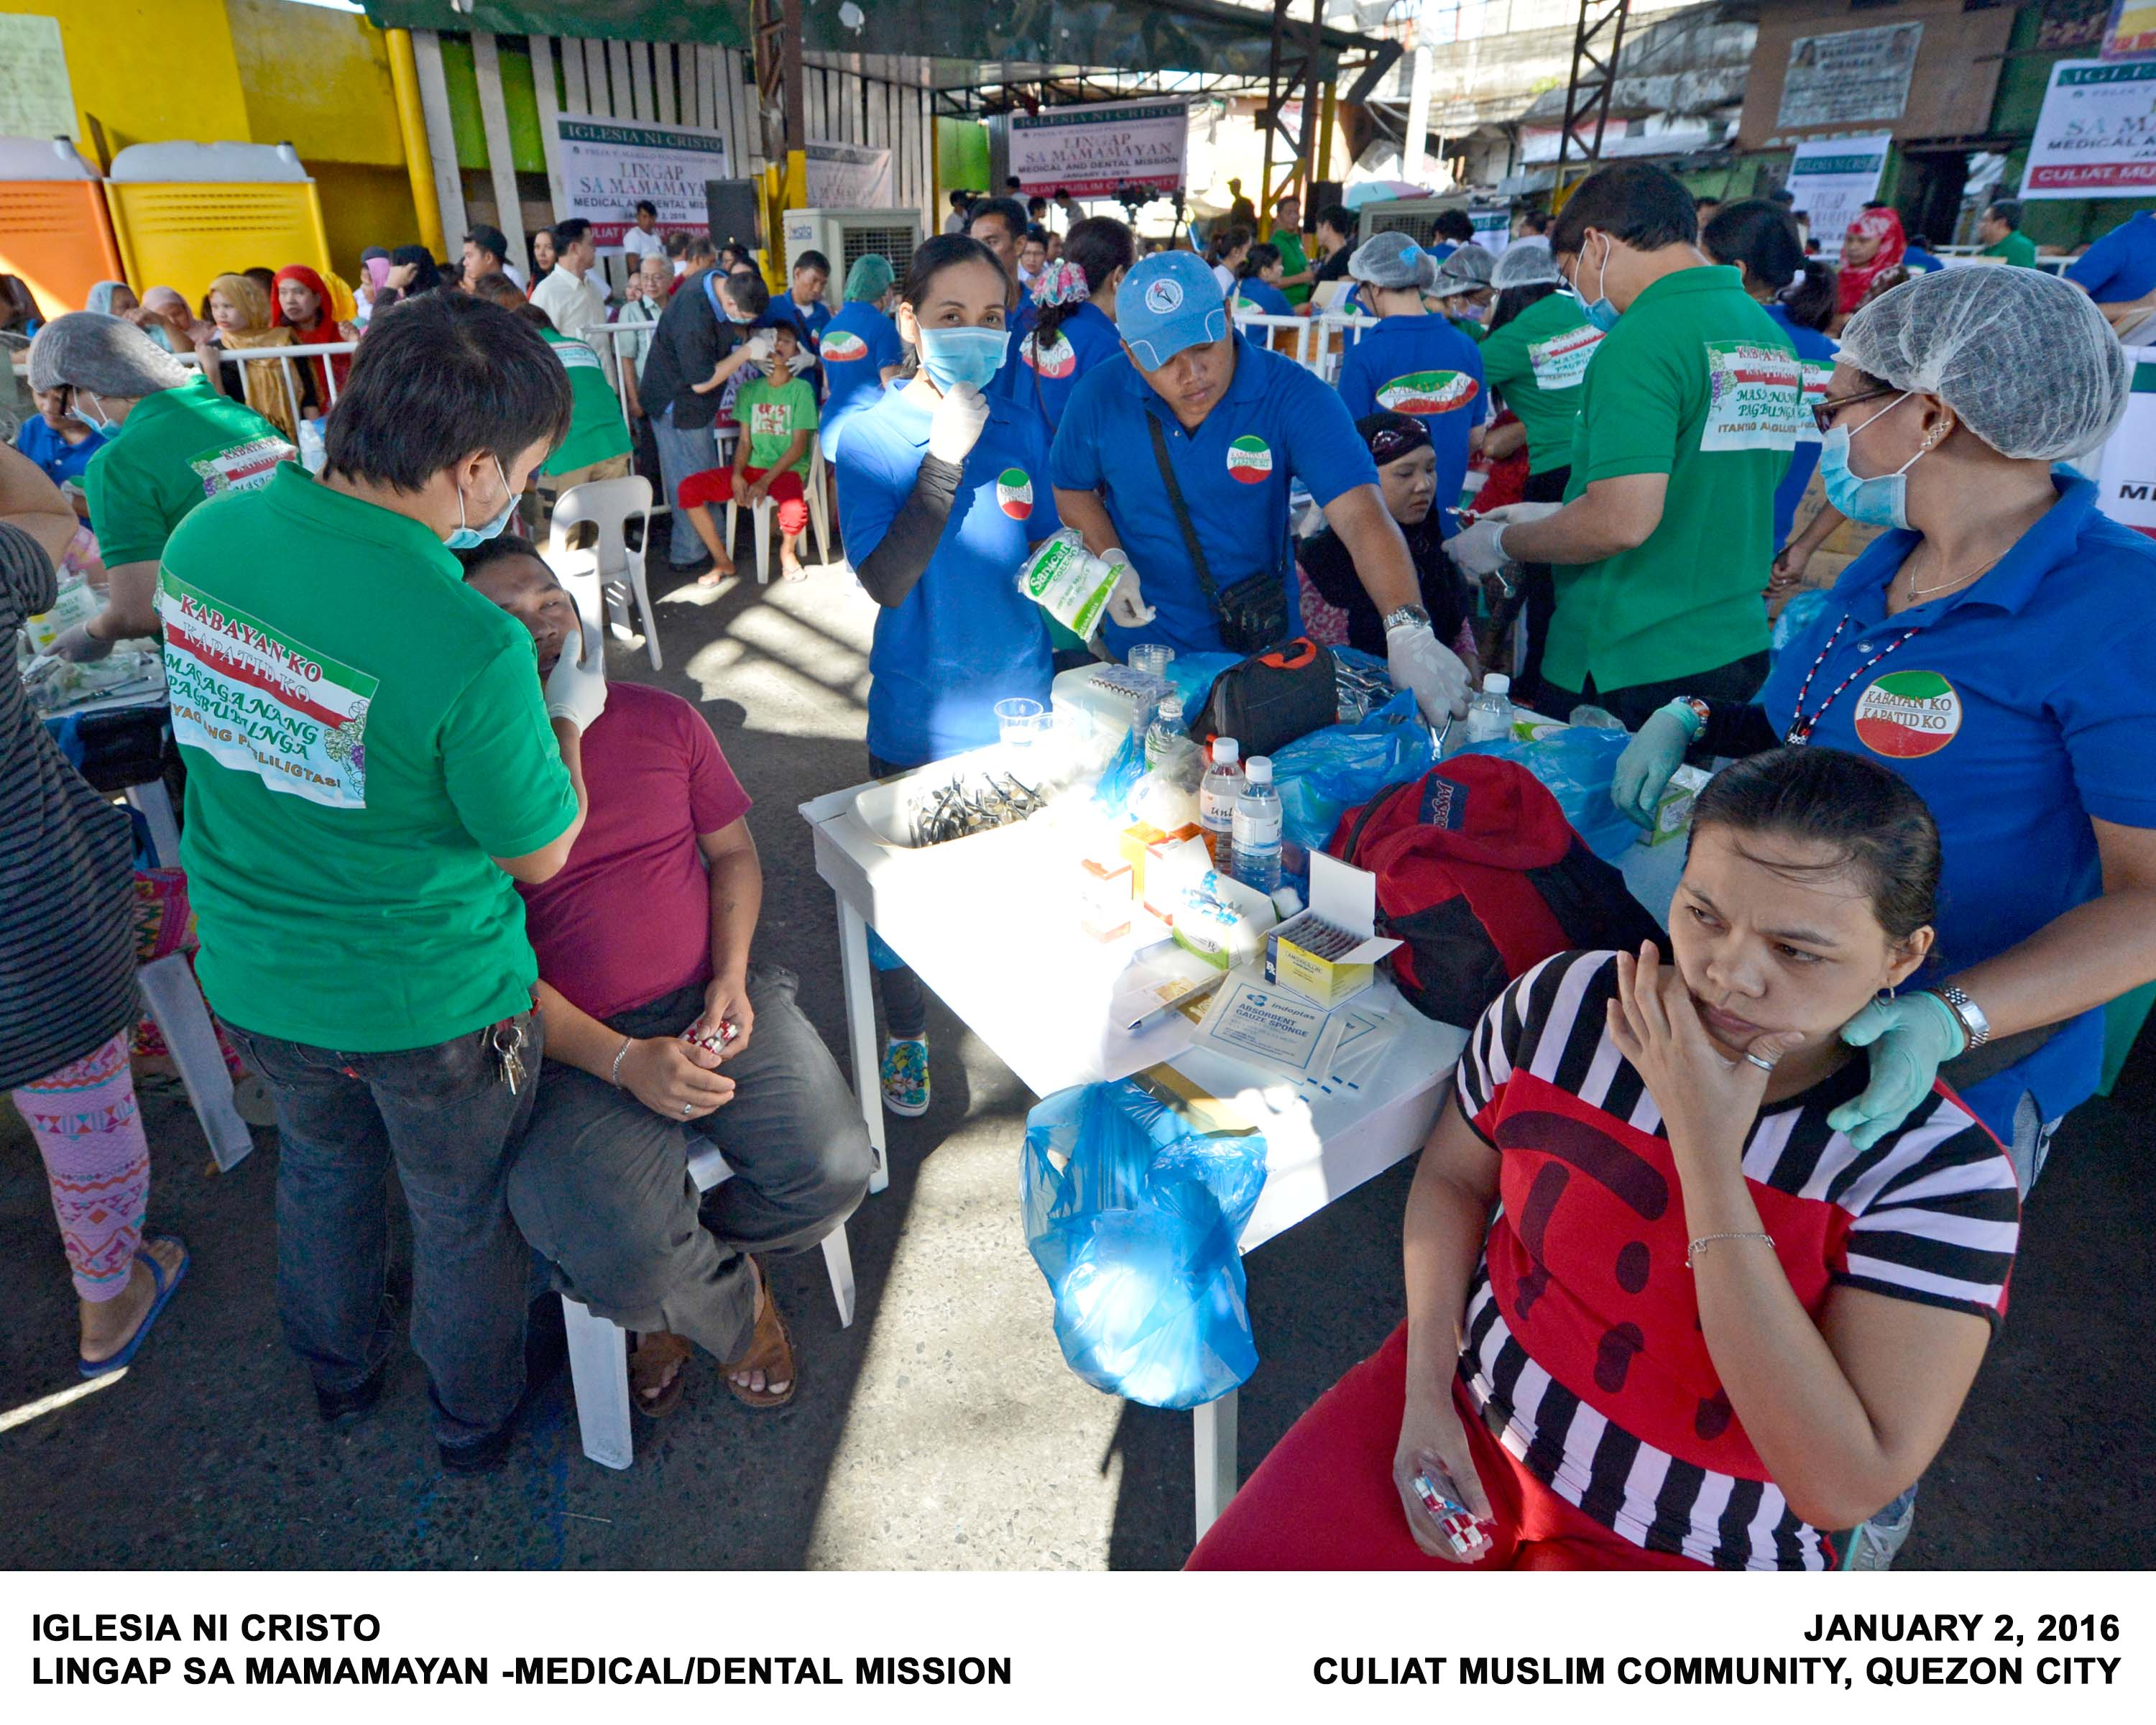 Inc Holds Medical Mission For Muslims In Qc